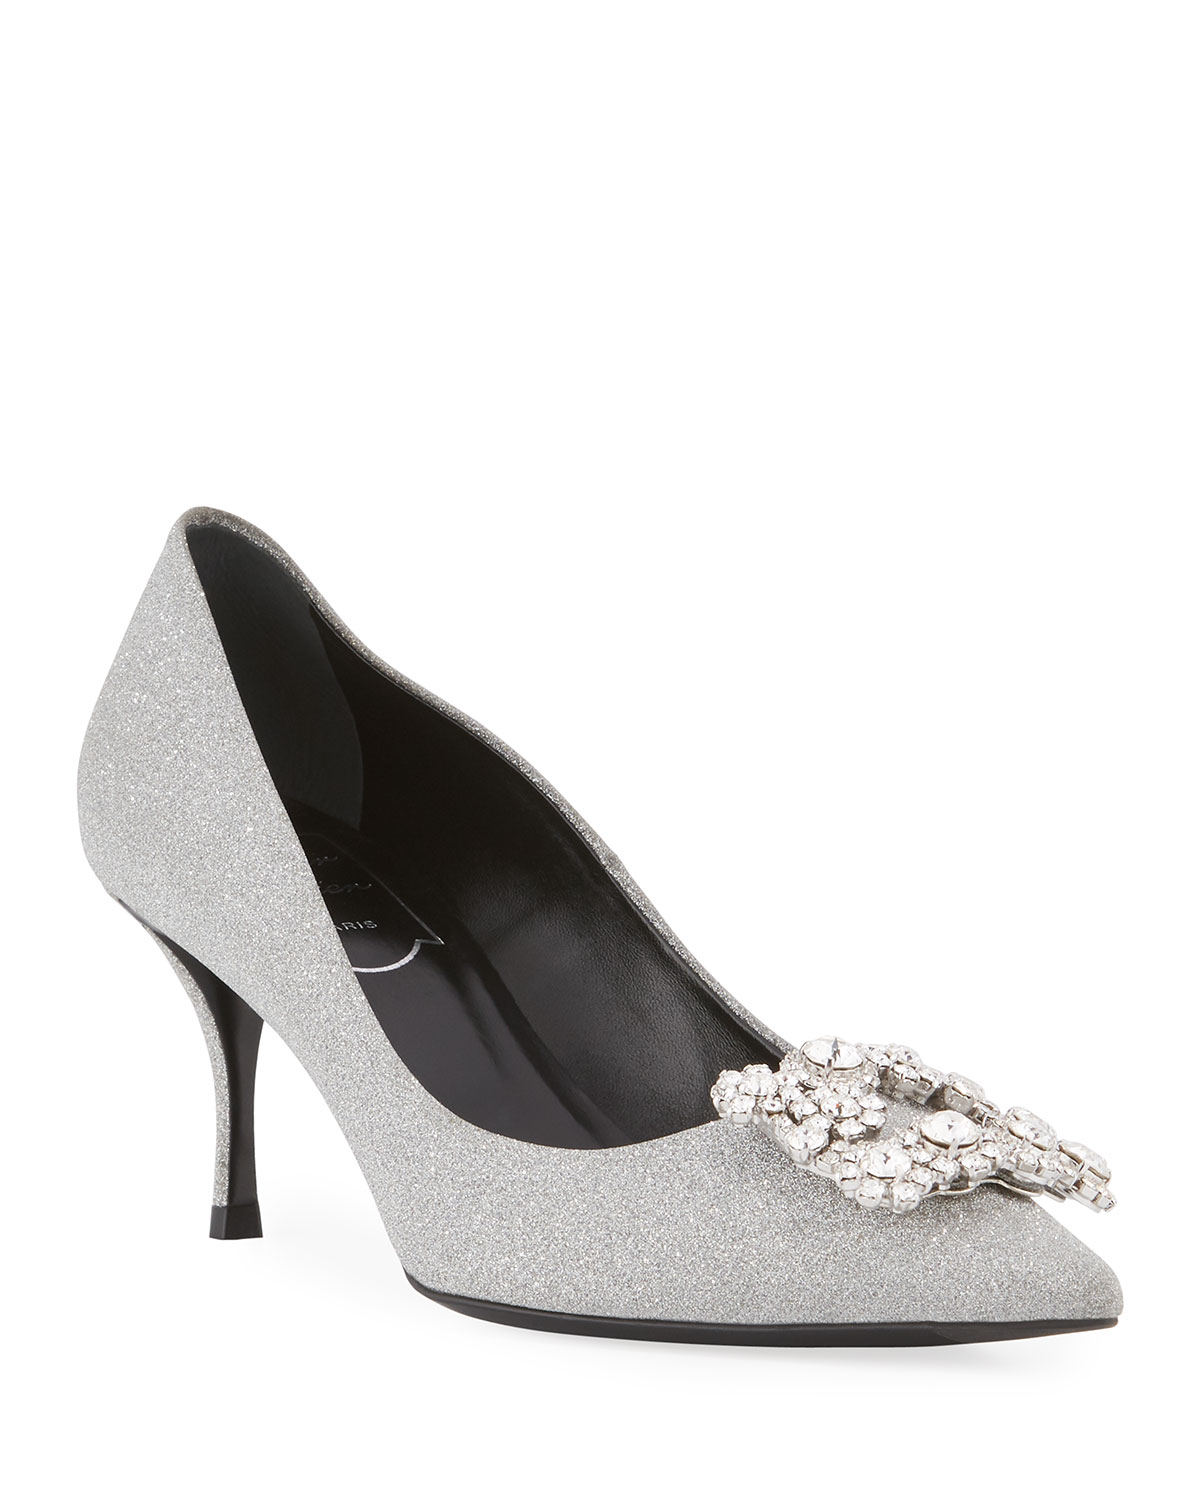 d362f0ac743 Roger Vivier Glitter Fabric Flower-Crystal Buckle Pumps